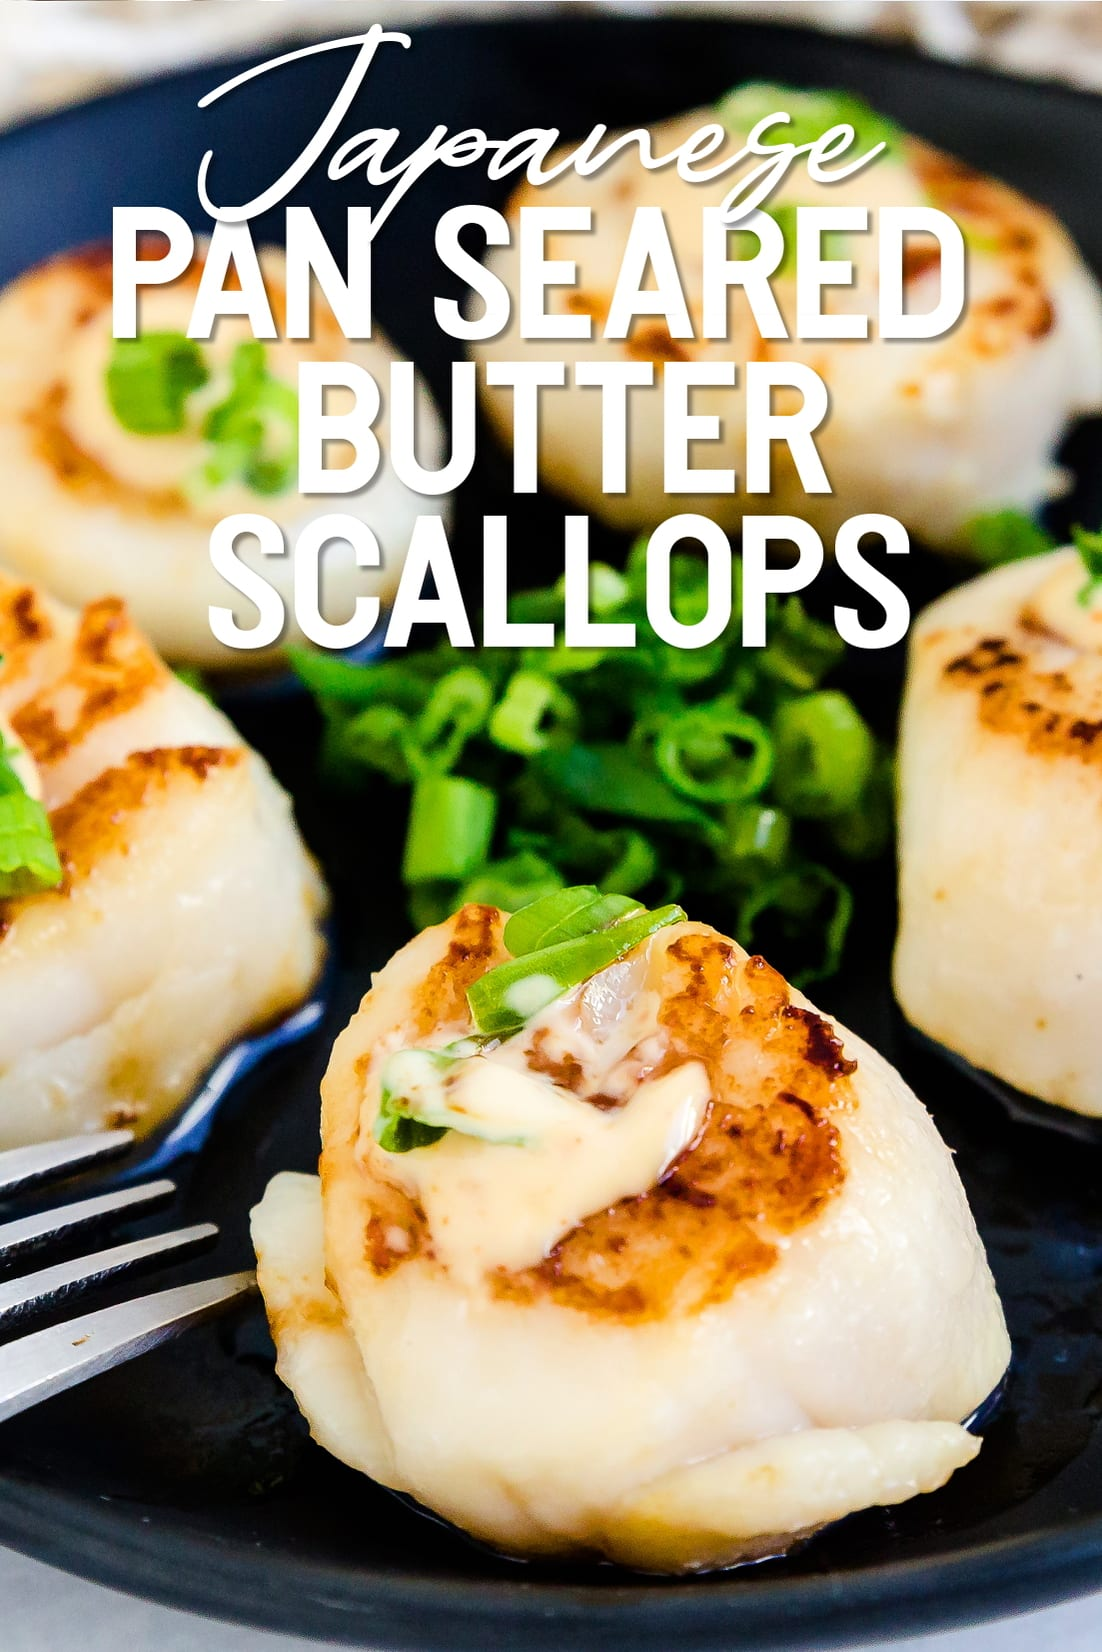 Japanese Style Butter Pan Seared Scallops served on a black plate with a fork